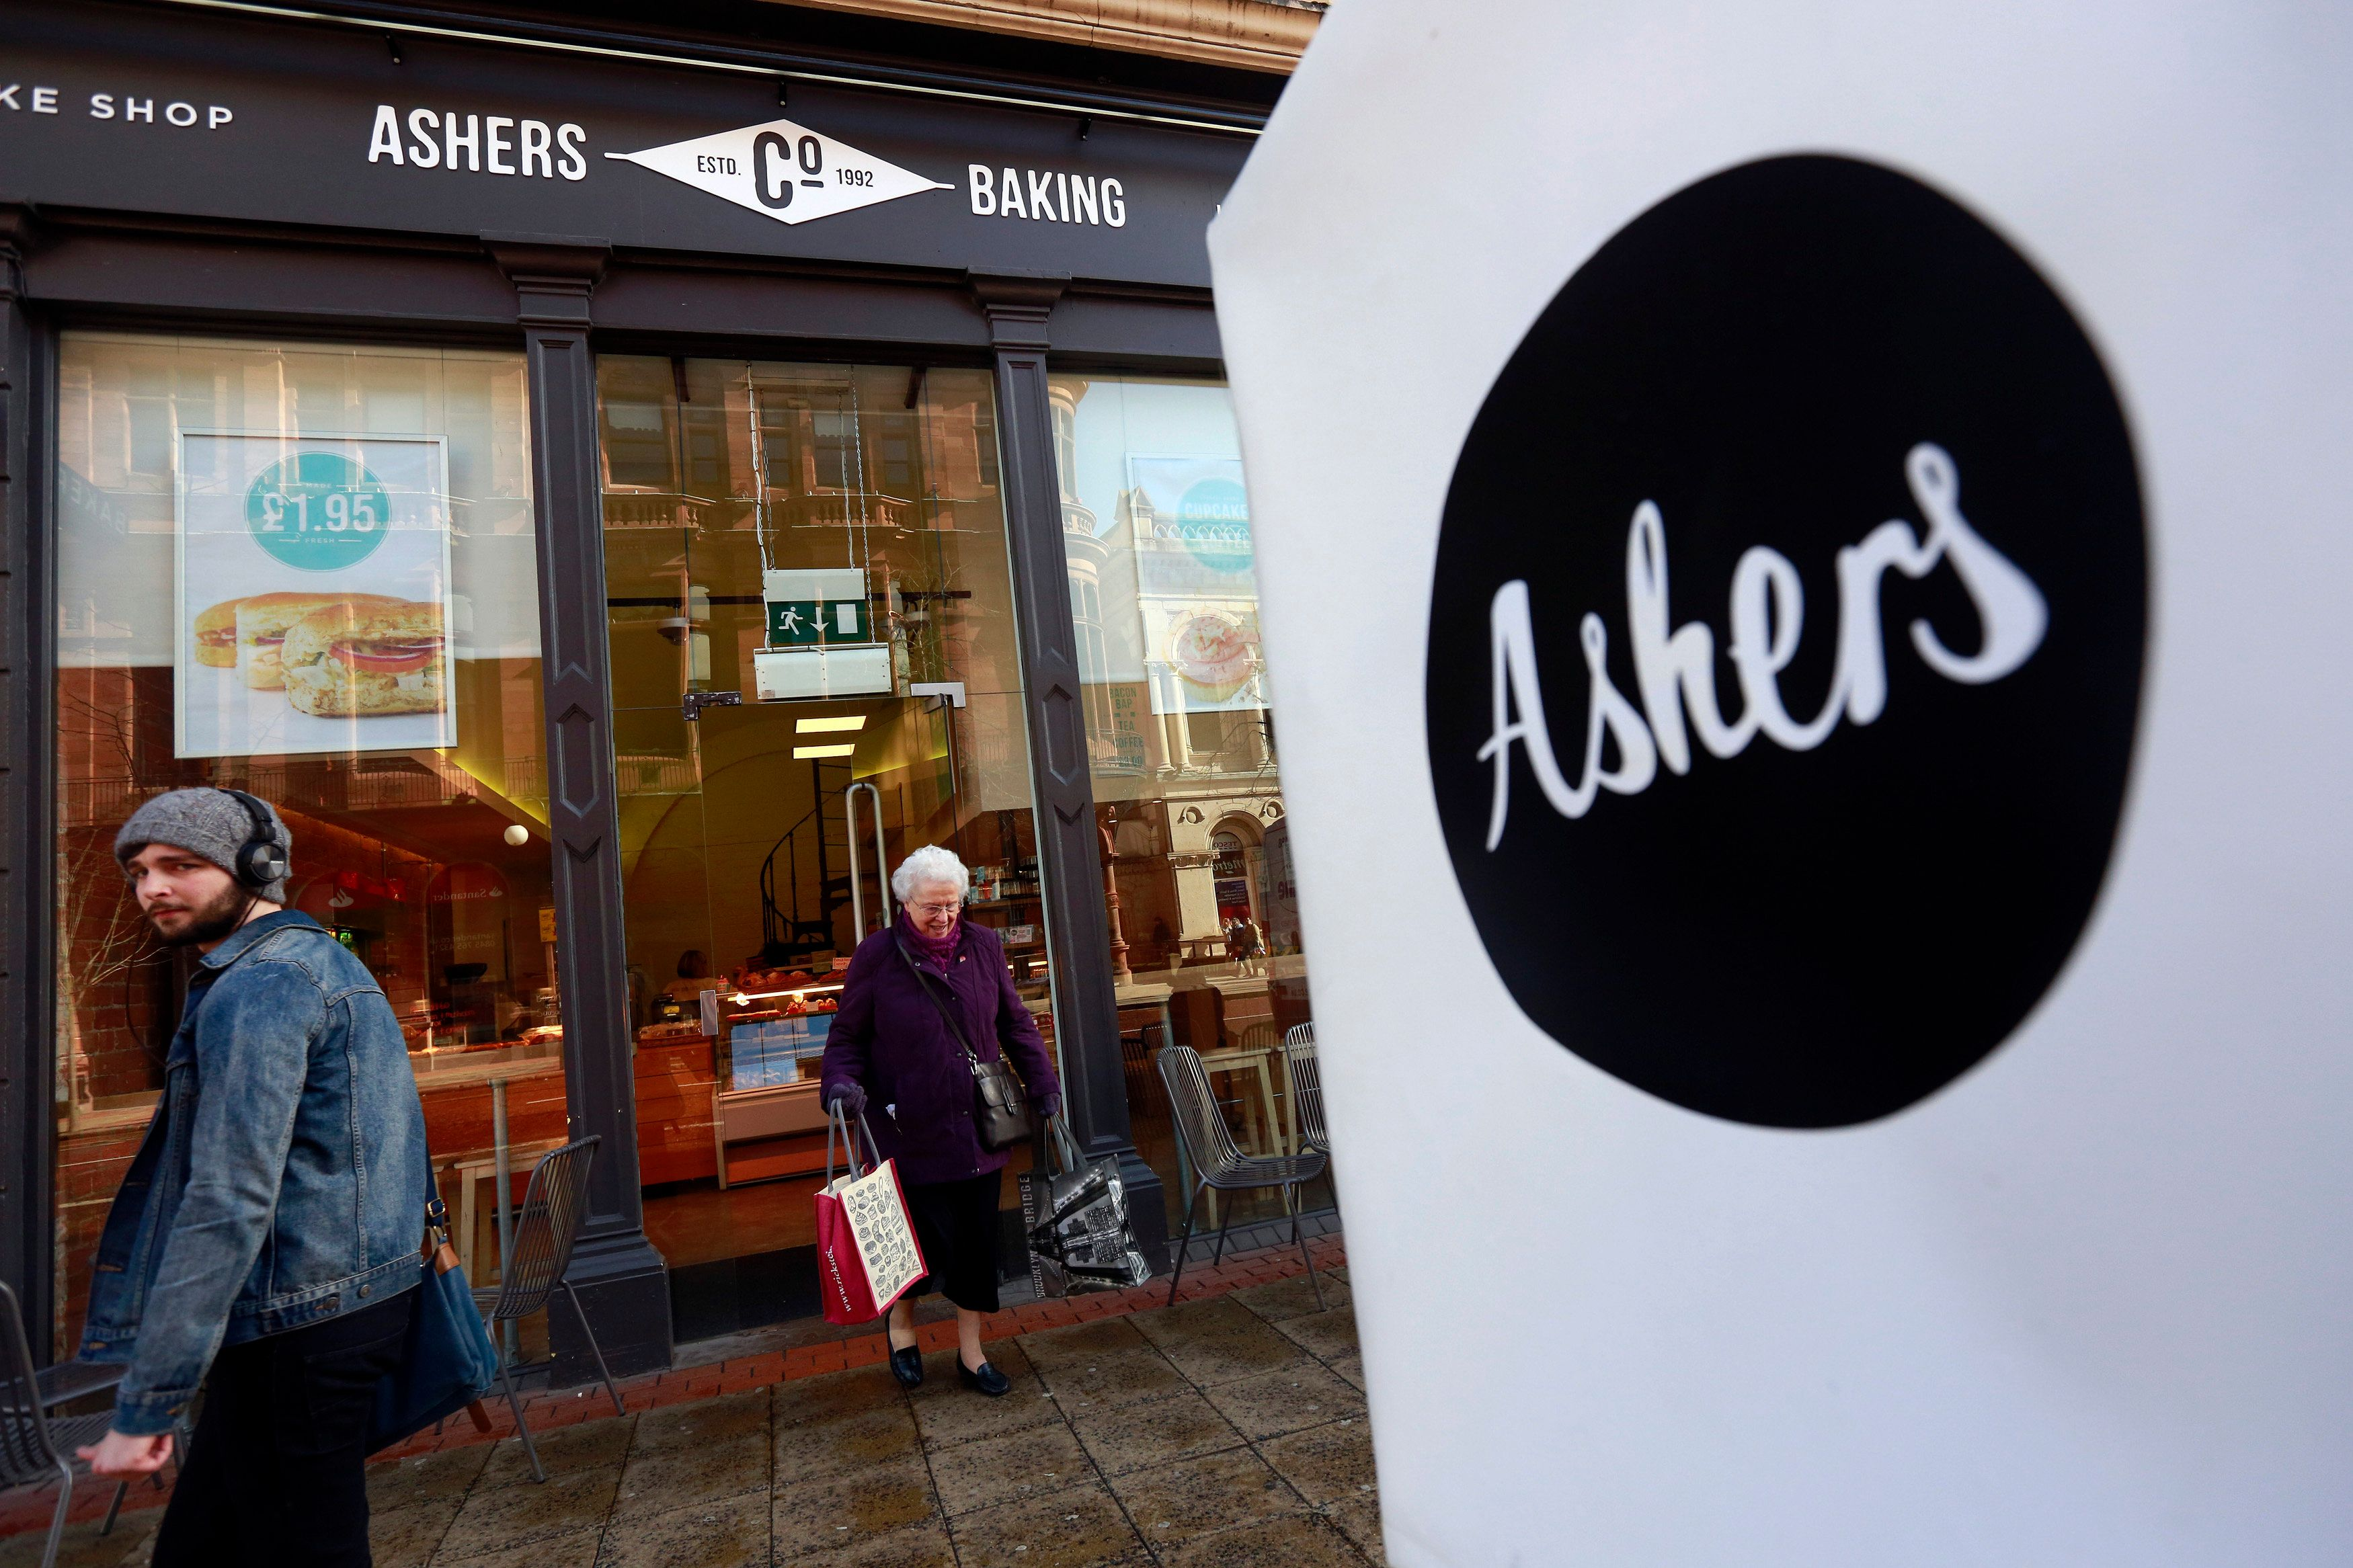 Ashers Baking Co in Belfast had been found guilty of discrimination in 2015.